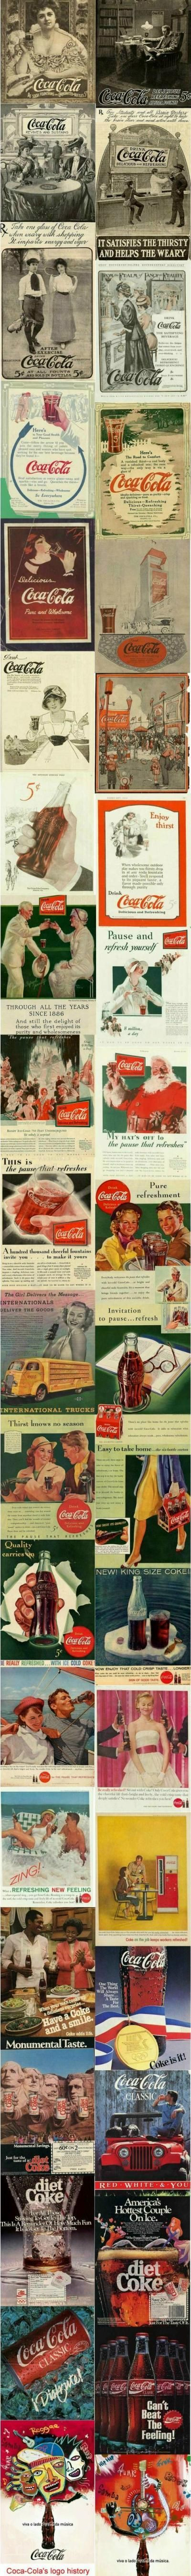 Coca Cola Old Ads: